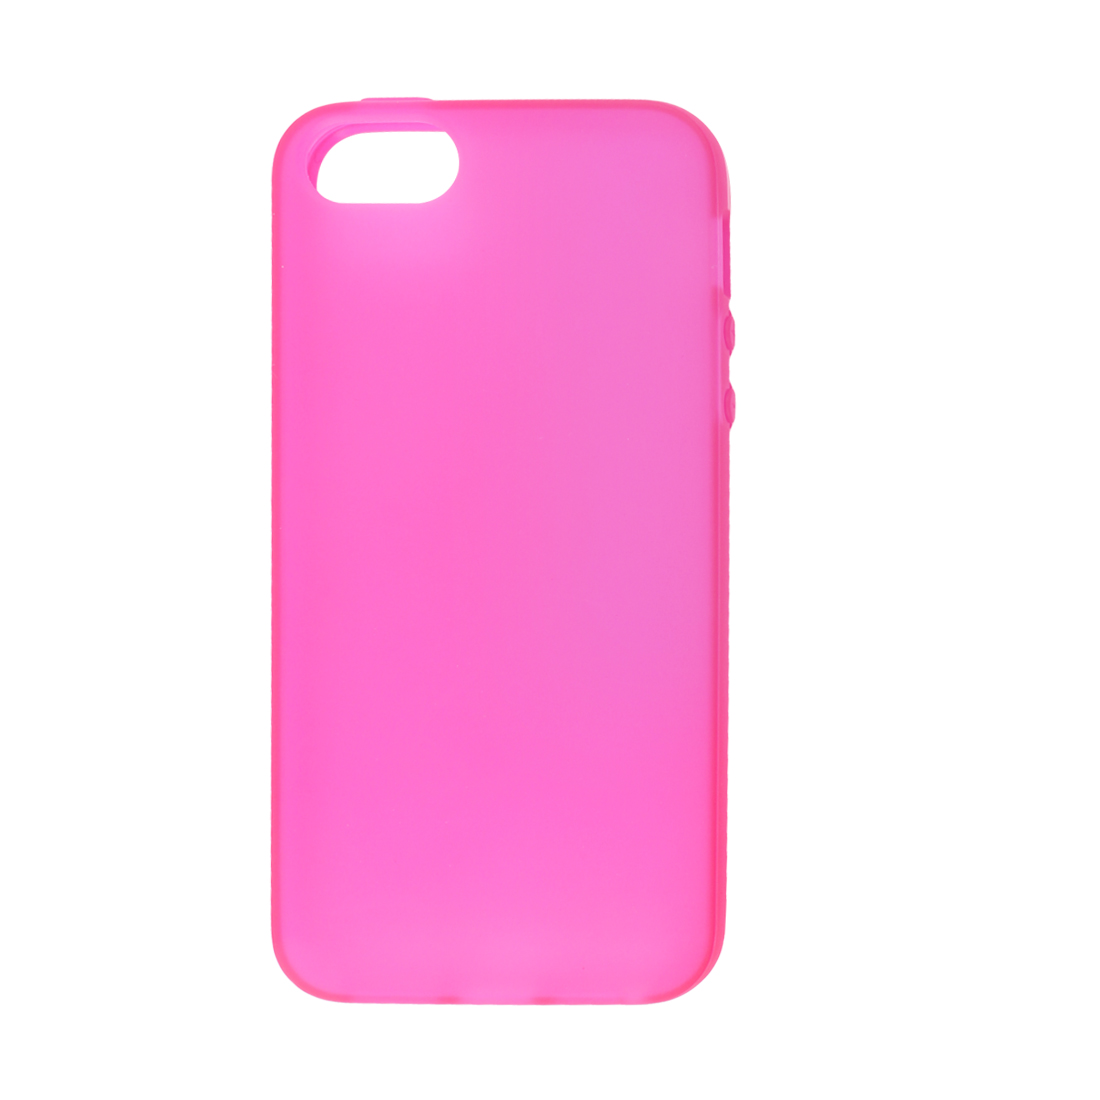 Solid Fuchsia TPU Soft Plastic Protect Back Case Cover for iPhone 5 5G